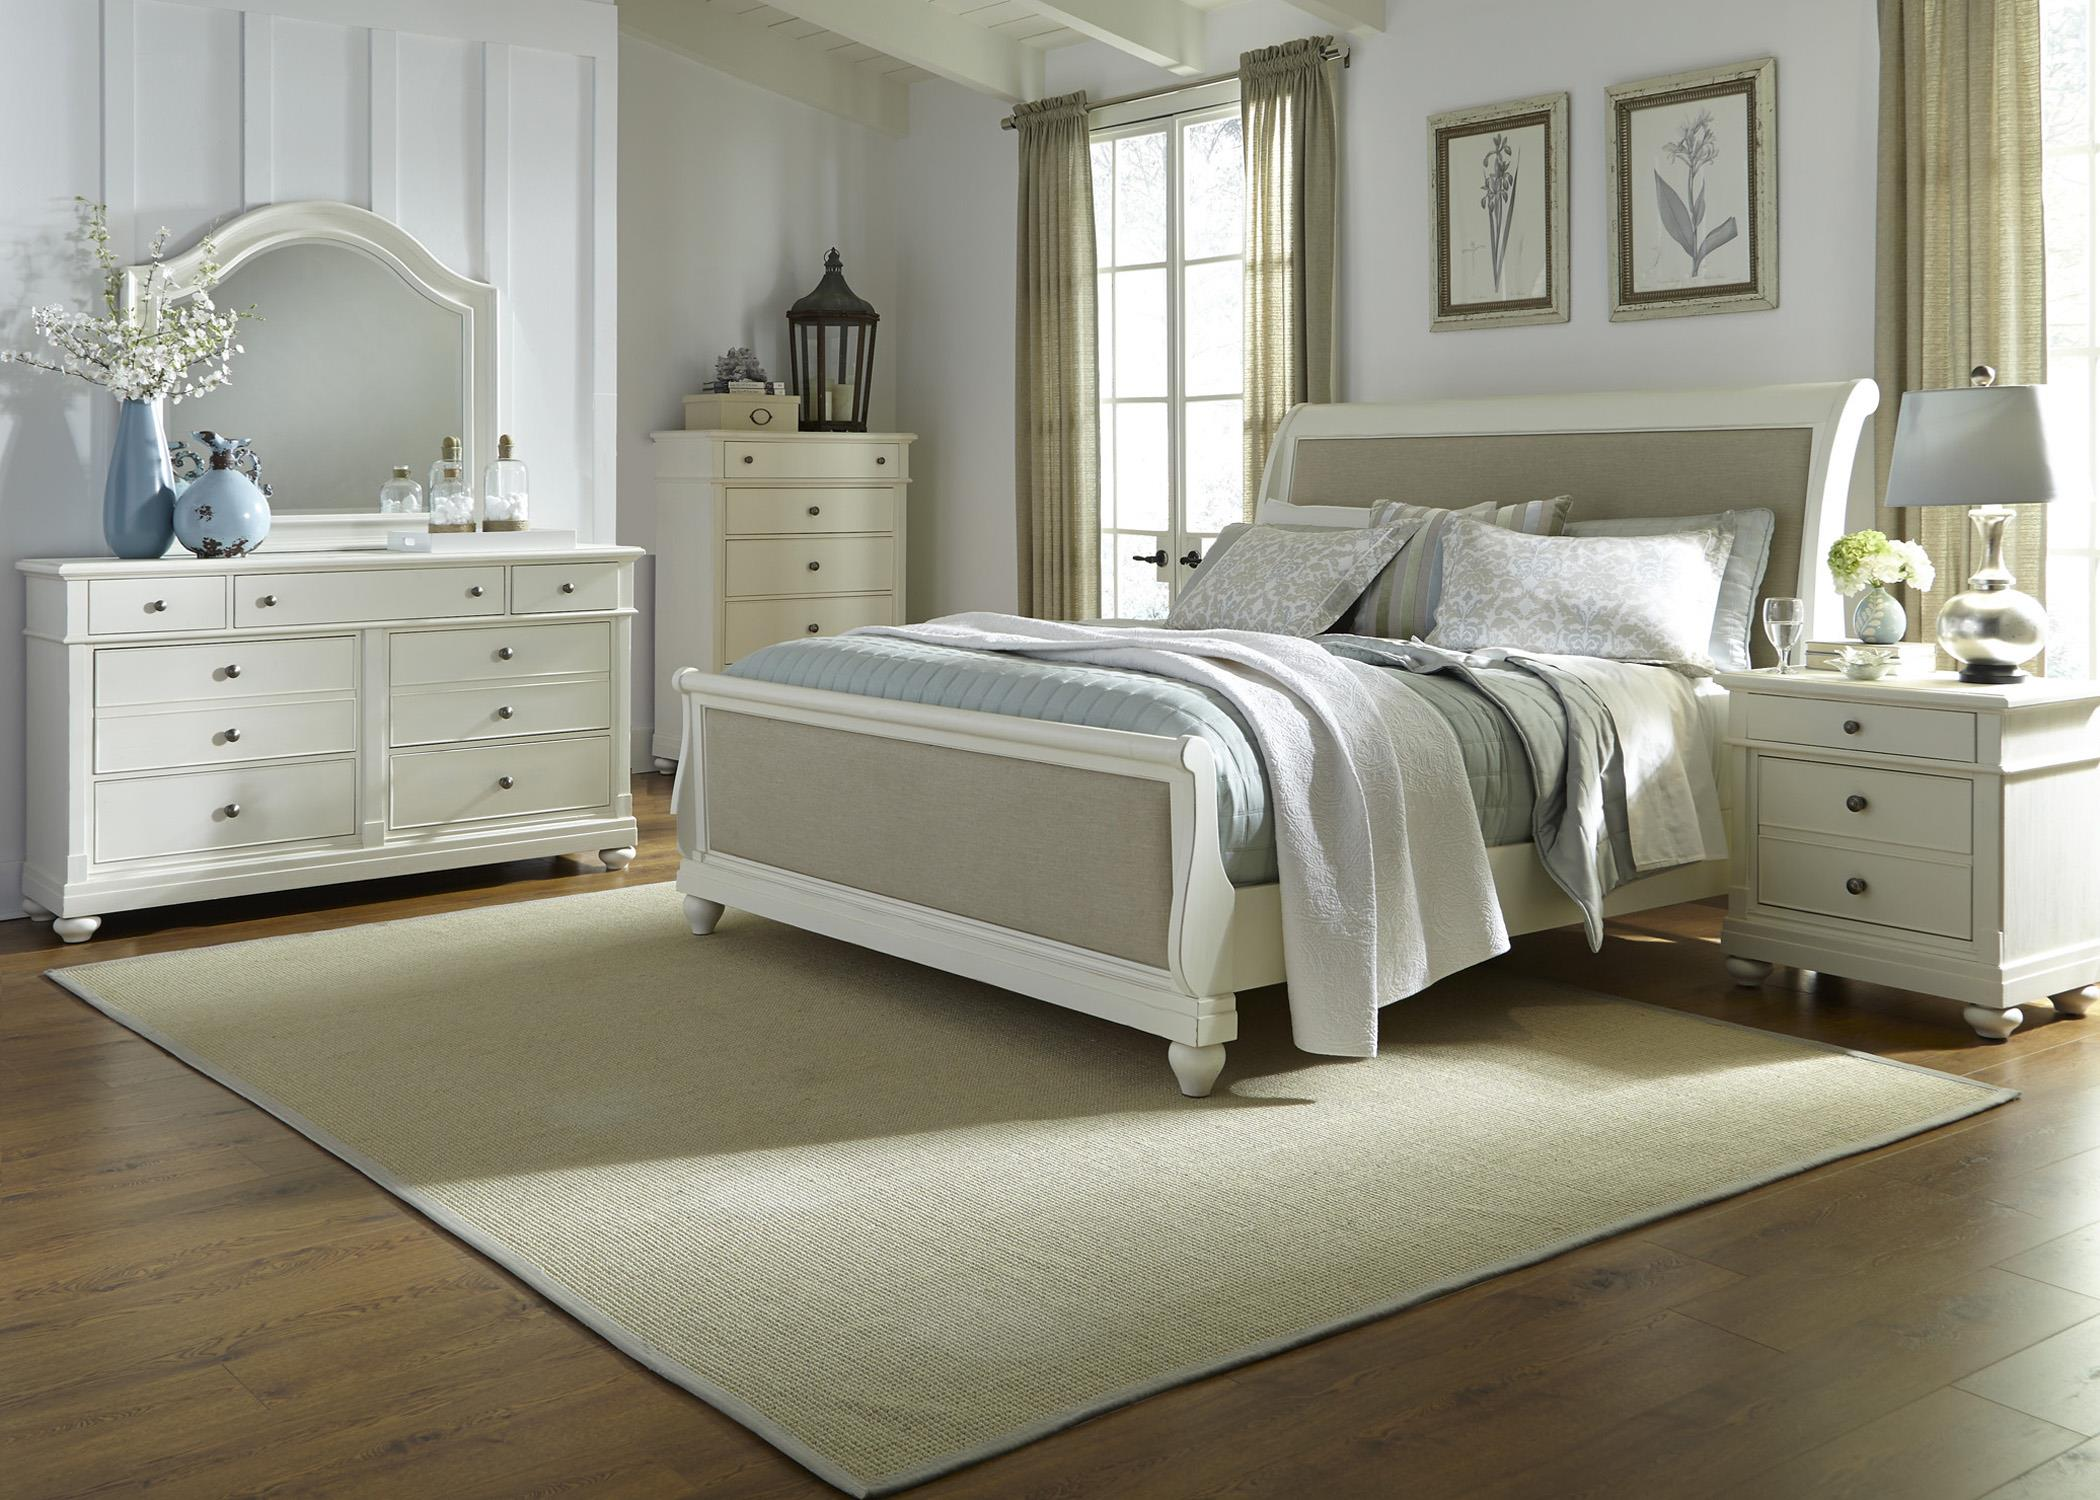 Liberty Furniture Harbor View King Bedroom Group - Item Number: 631-BR-KSLDMCN